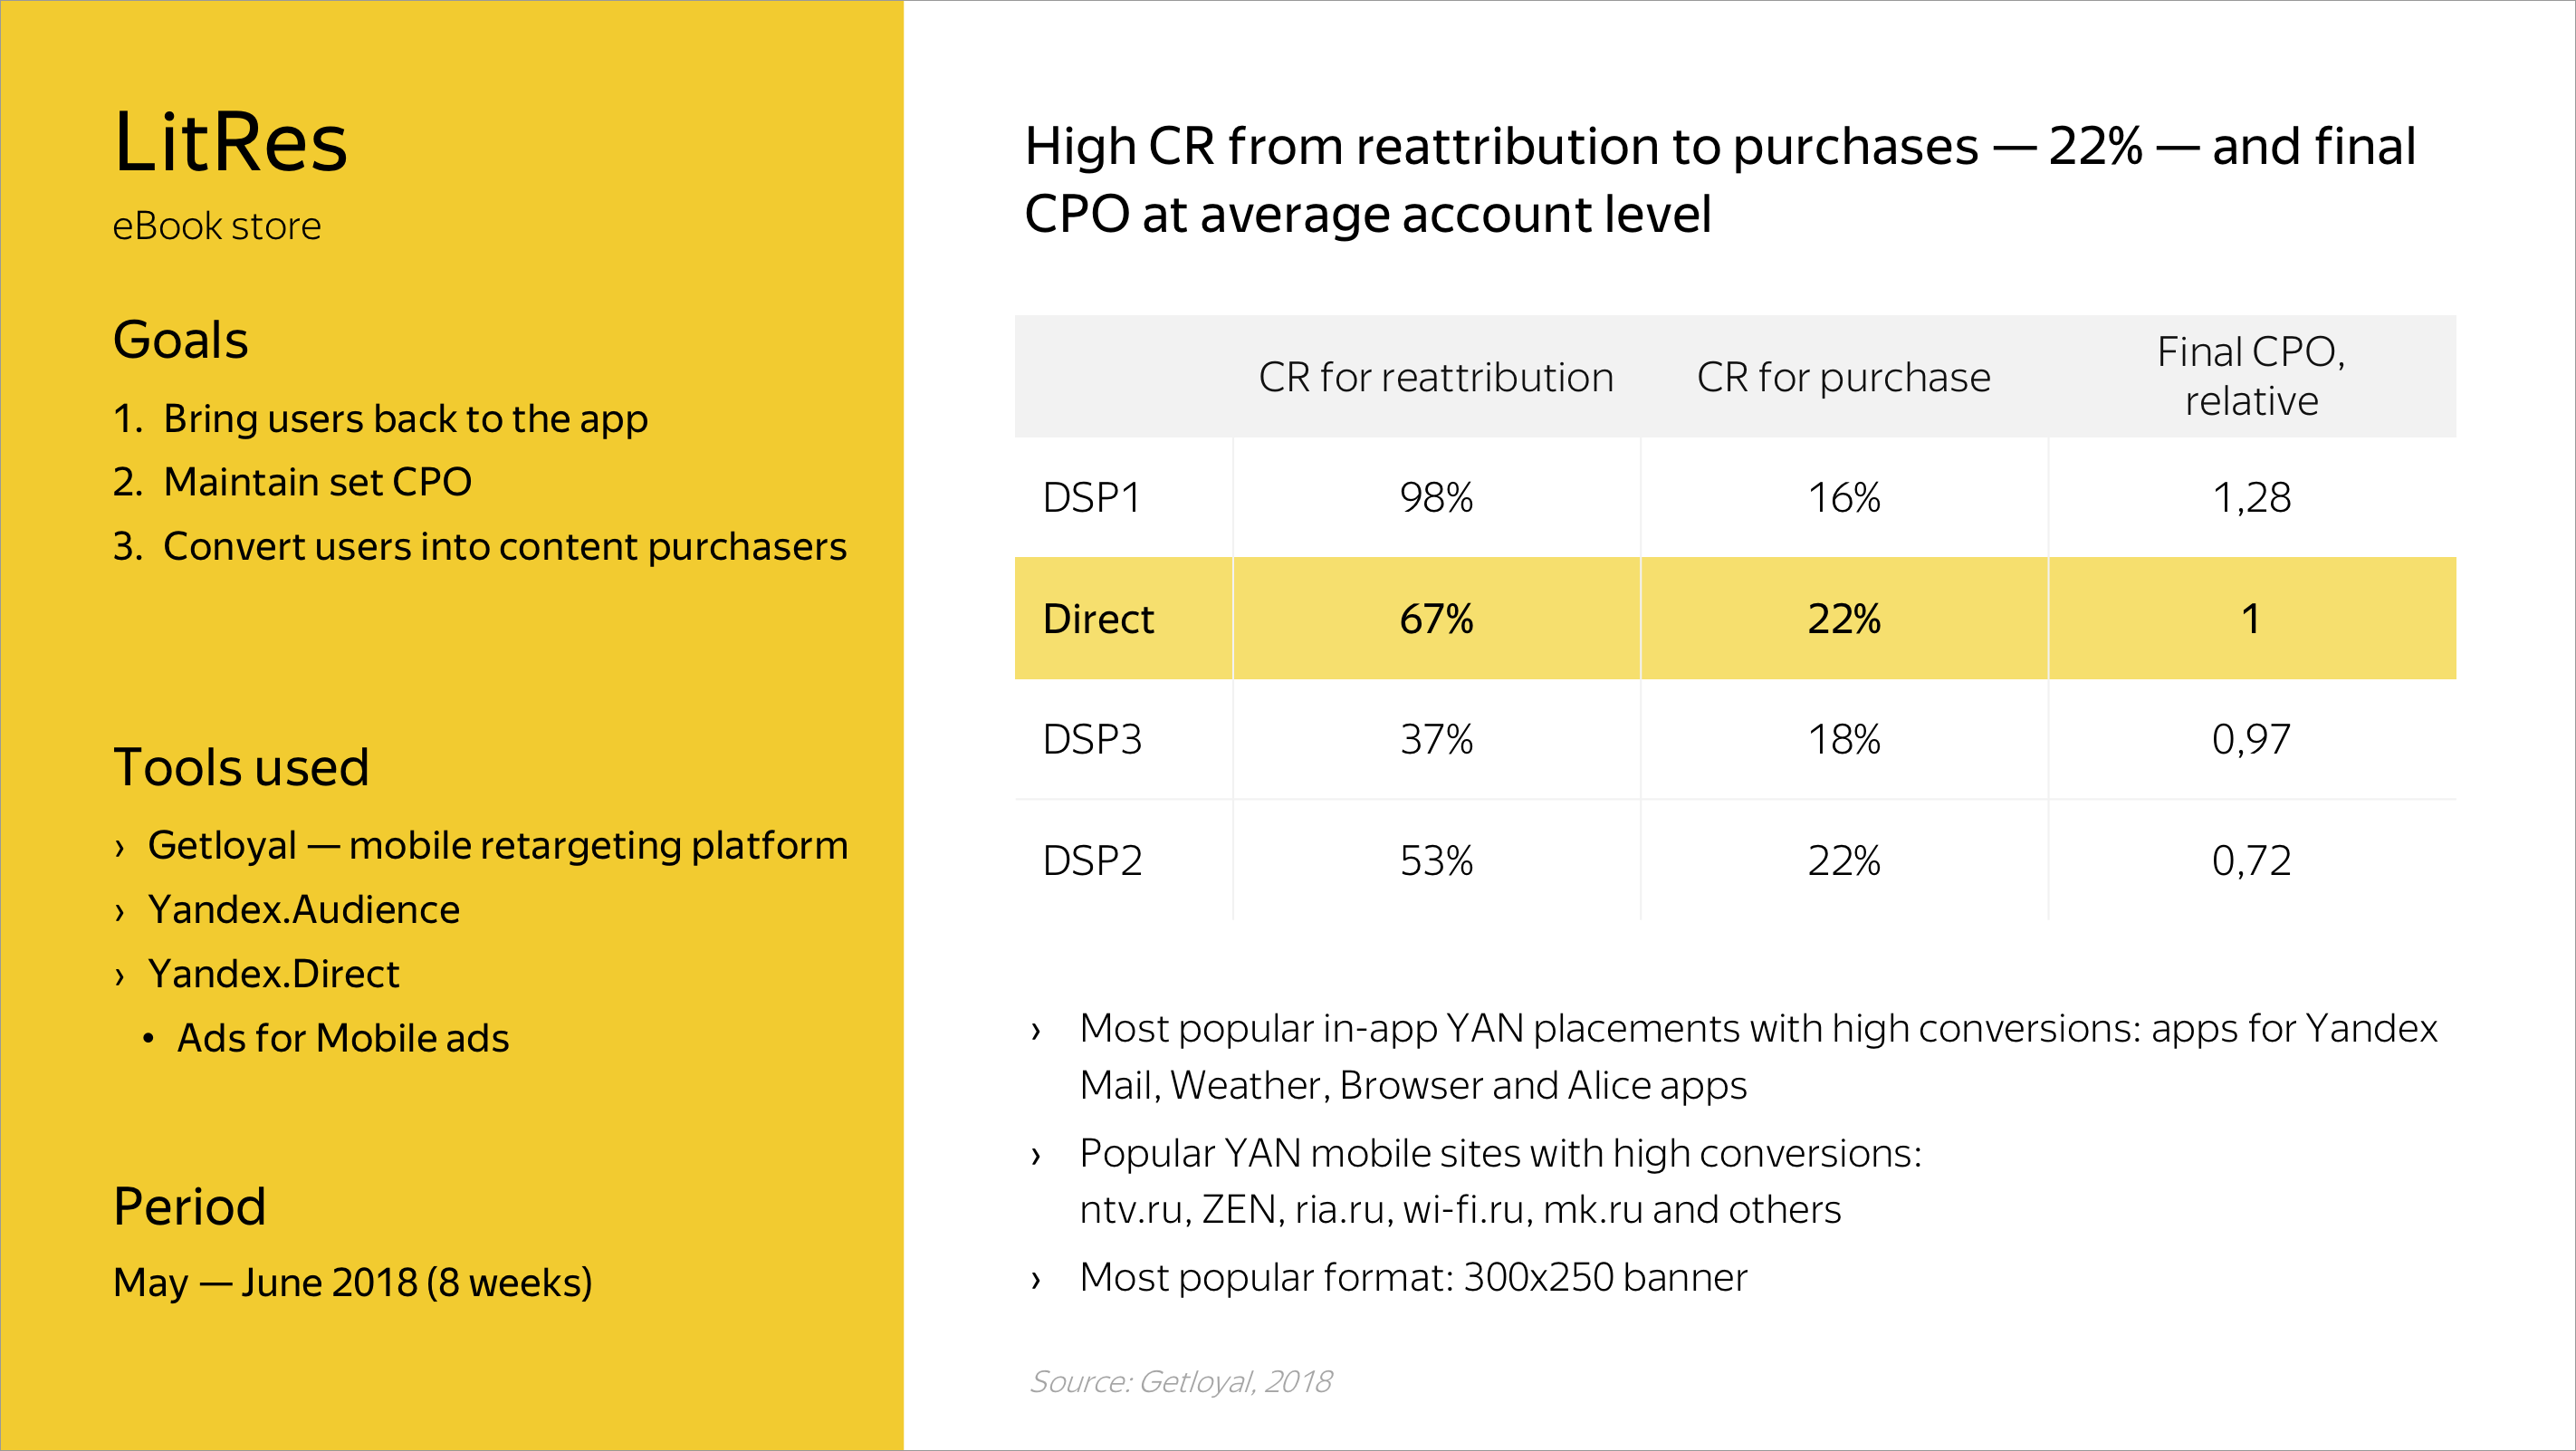 High CR from reattribution to purchases — 22% — and final CPO at average account level